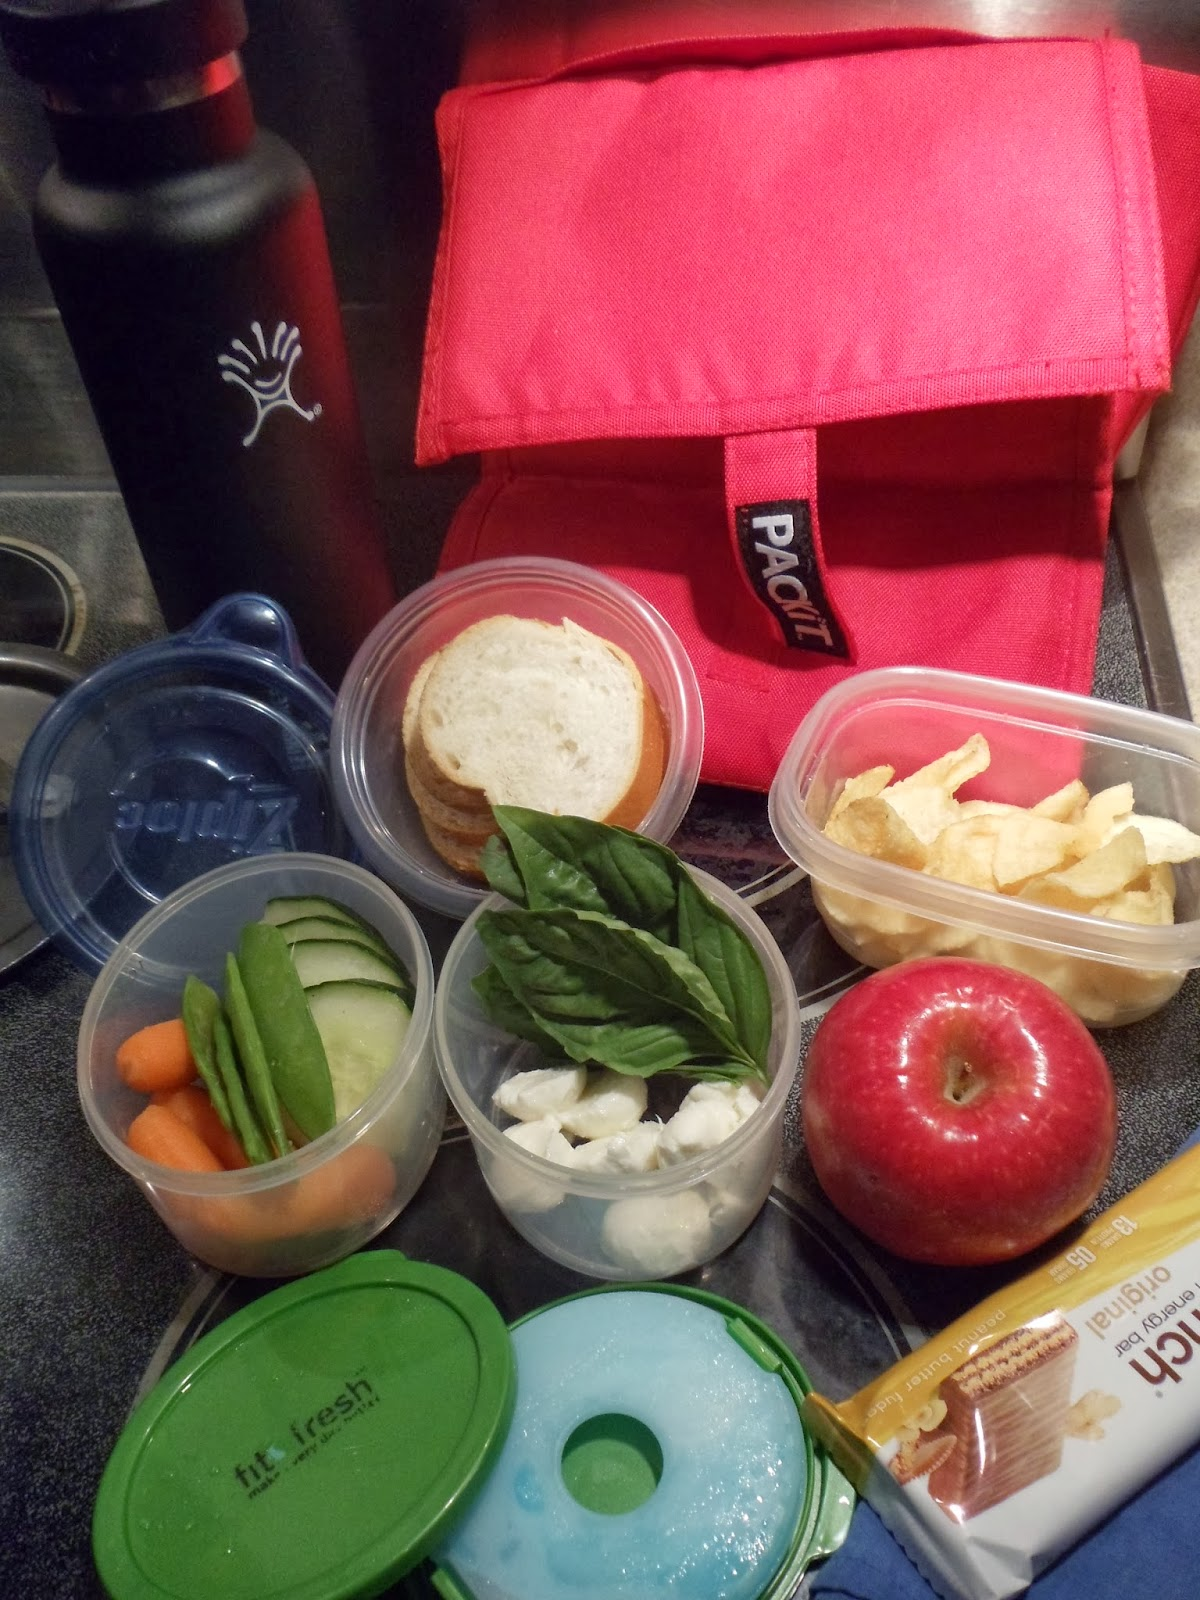 best lunch box ever ideas and recipes for school lunches kids will love by katie morford. Black Bedroom Furniture Sets. Home Design Ideas